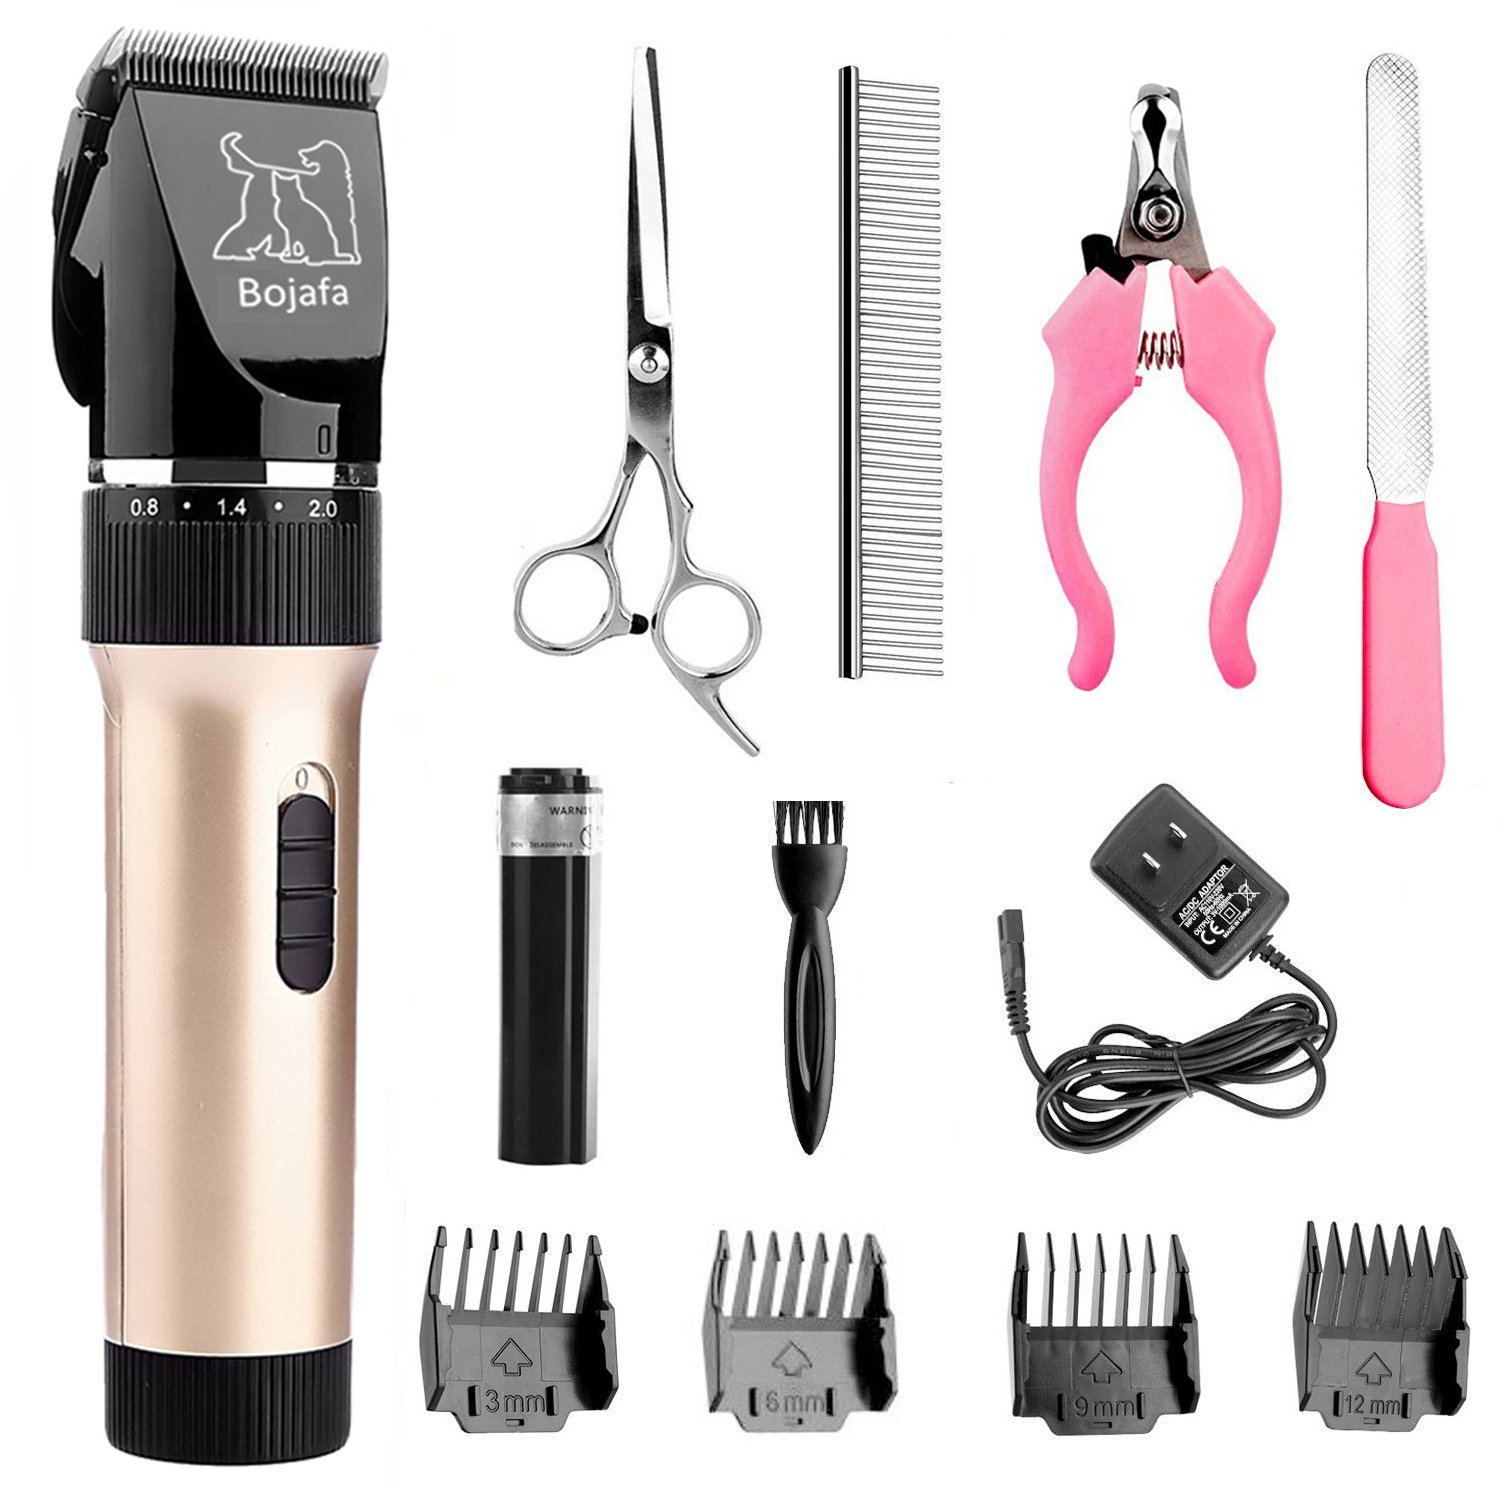 Bojafa Dog Clippers Low Noise Pet Grooming Clippers Tools Cordless Rechargeable Horse Cat Dog Hair Clippers Trimmers